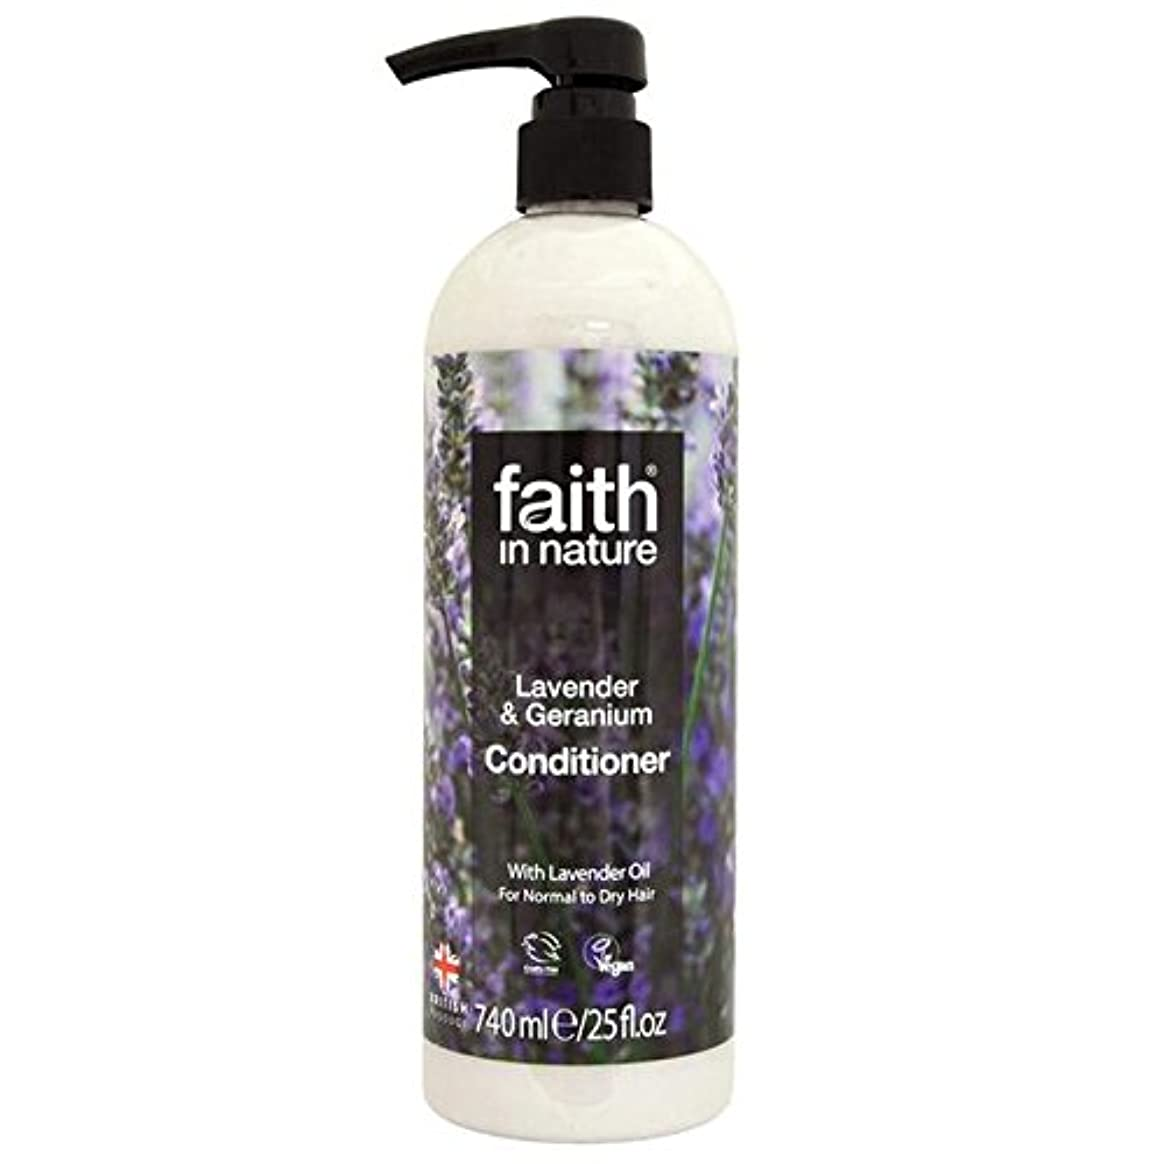 ハブ敬残基Faith in Nature Lavender & Geranium Conditioner 740ml (Pack of 4) - (Faith In Nature) 自然ラベンダー&ゼラニウムコンディショナー740...